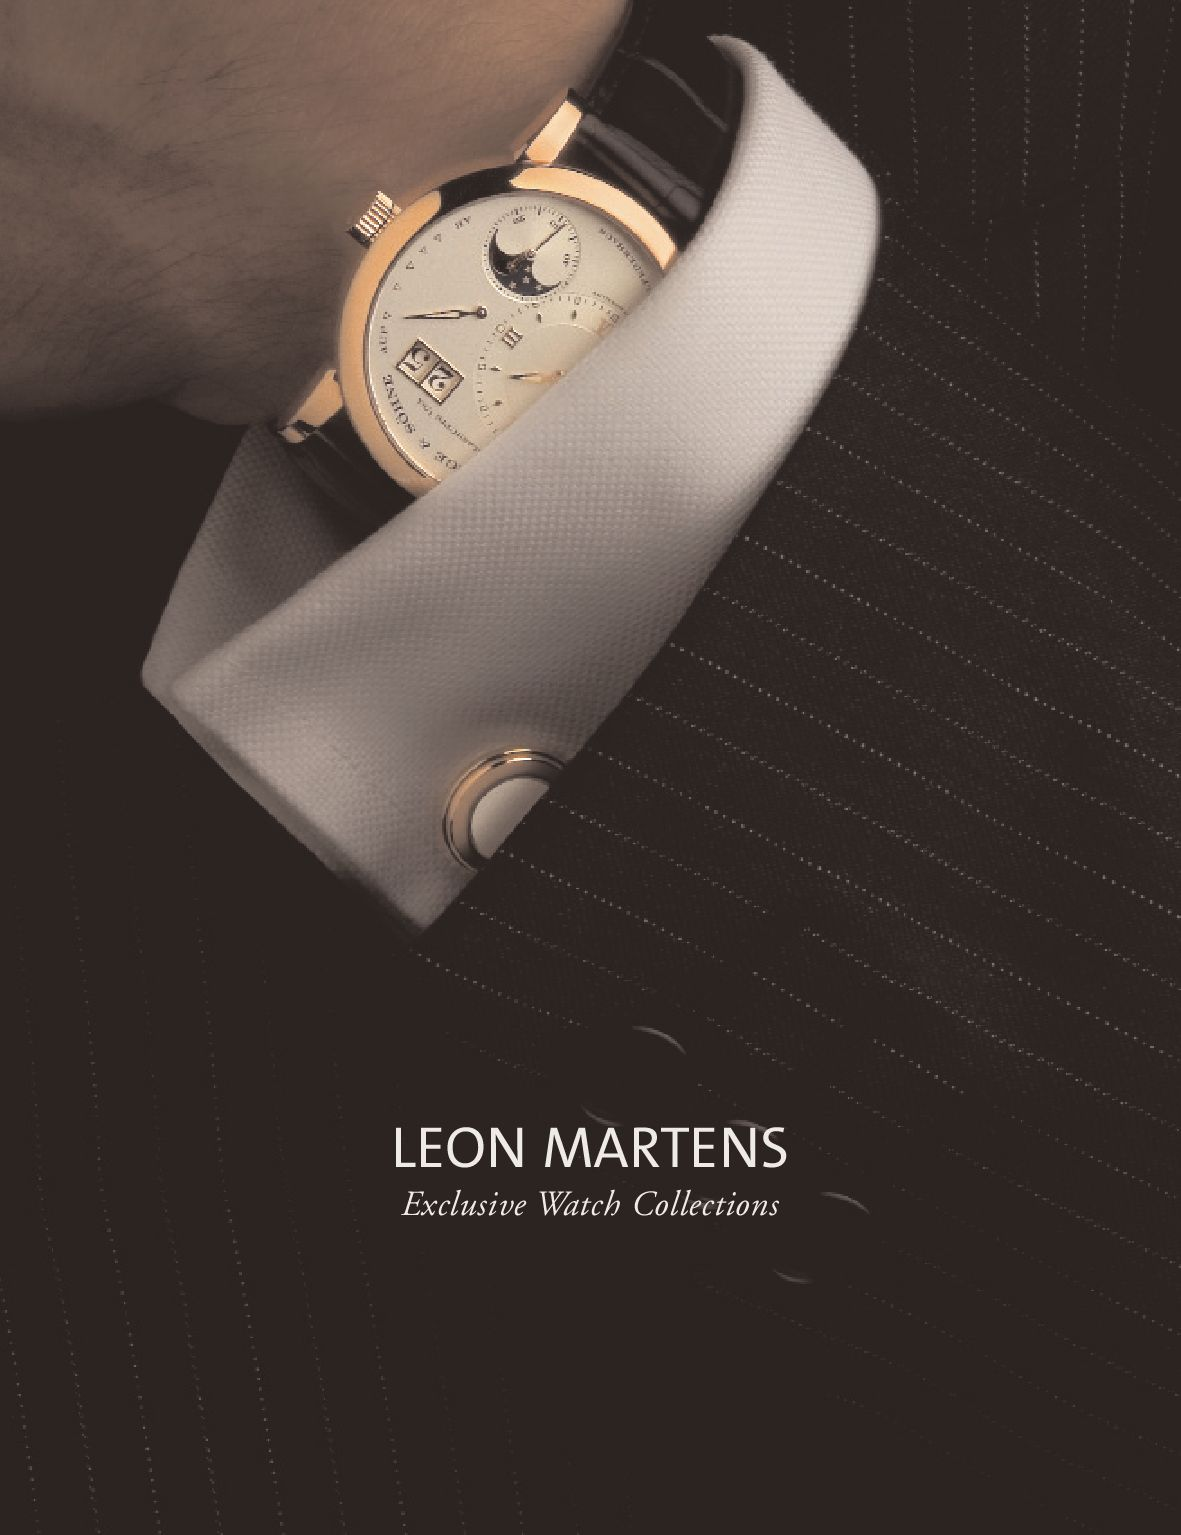 Leon martens timeless watches 2014 by Leon Martens - issuu